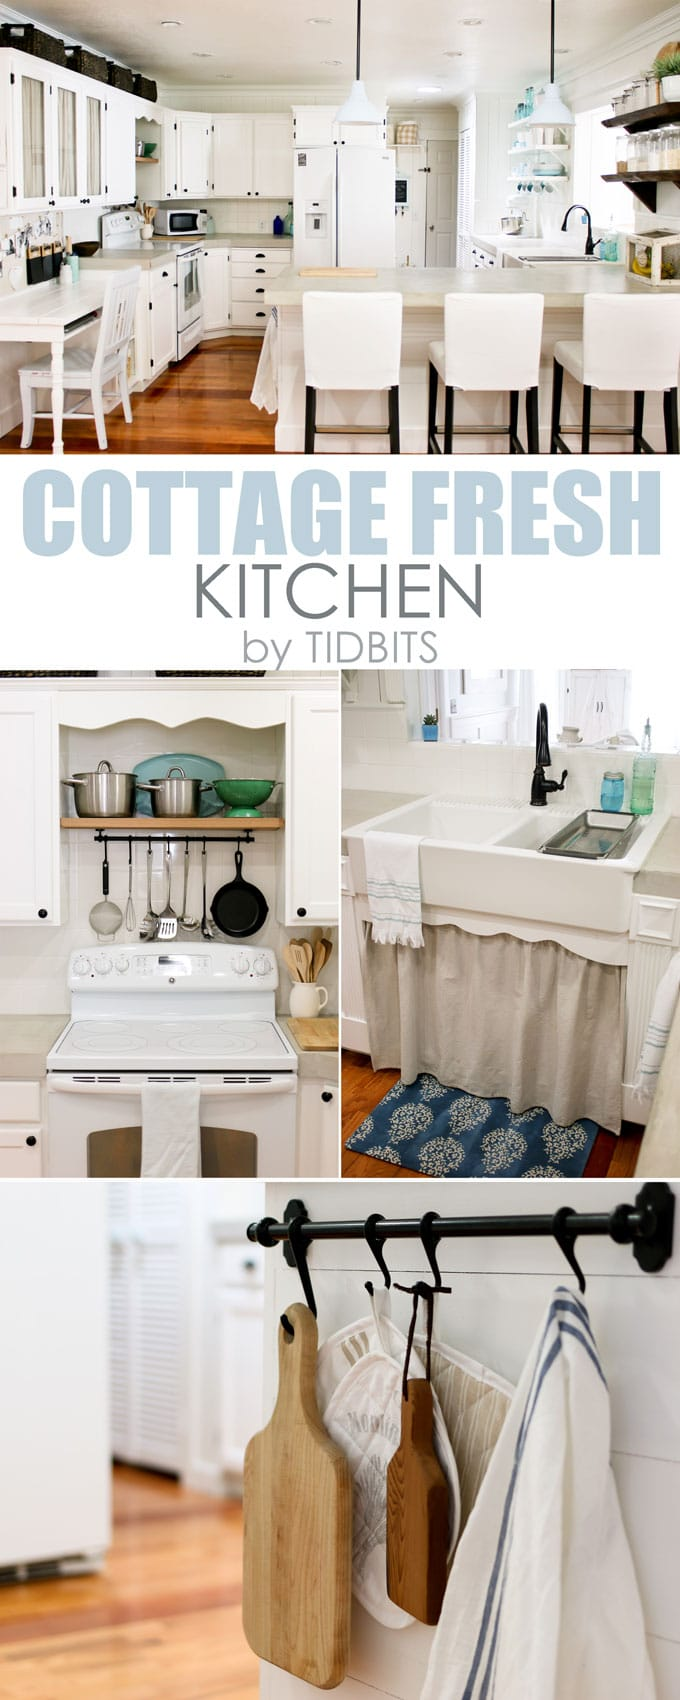 Cottage Fresh Kitchen, by Tidbits